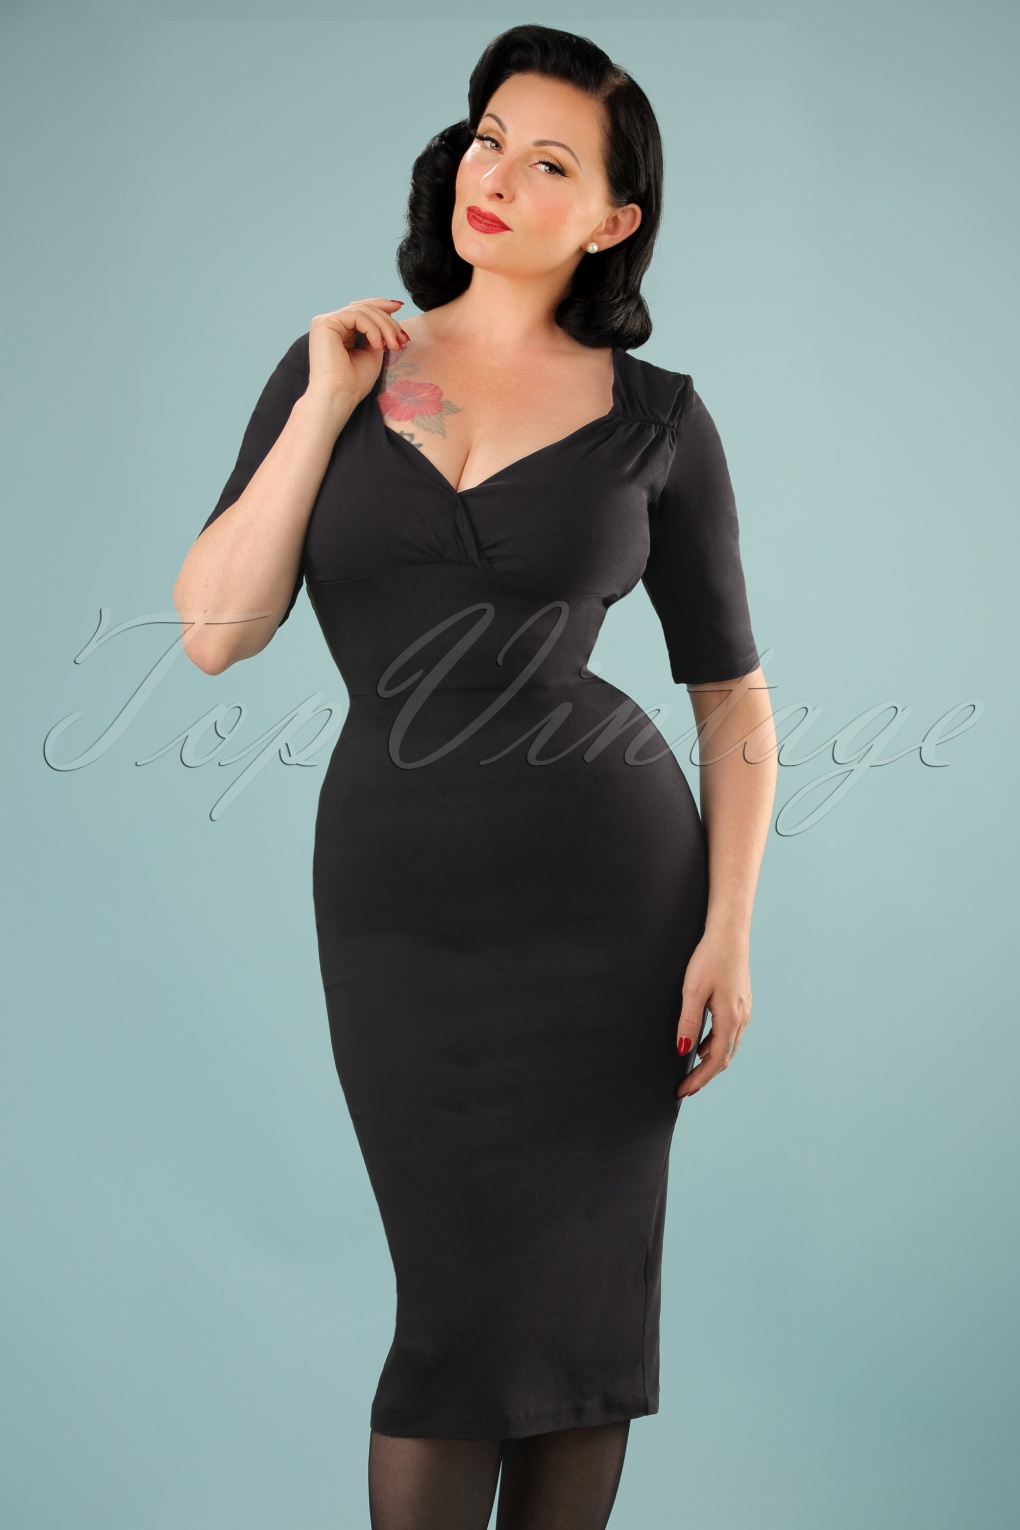 1950s Dresses, 50s Dresses | 1950s Style Dresses 50s Trixie Doll Pencil Dress in Black £49.53 AT vintagedancer.com